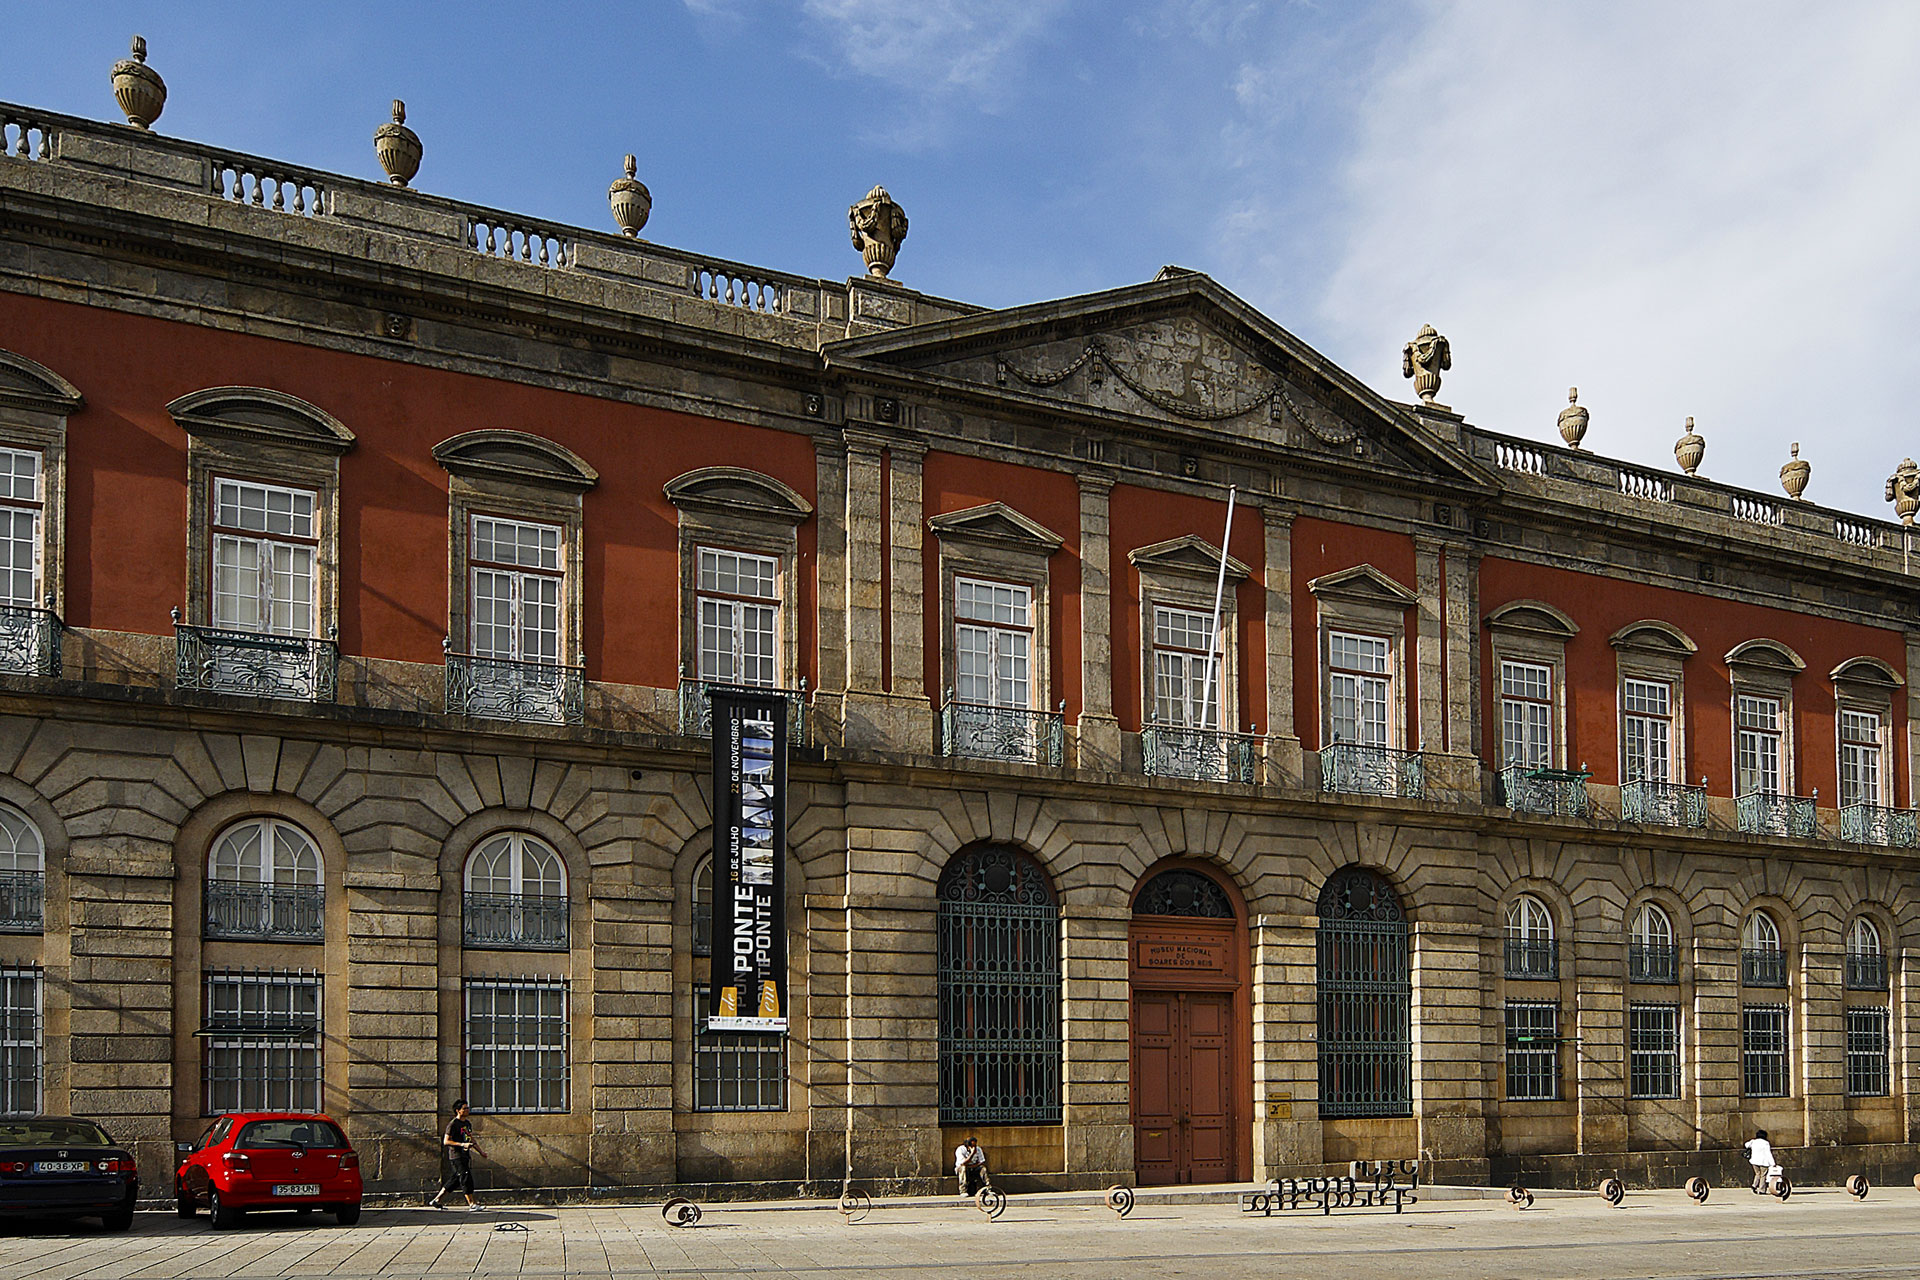 Museums in Portugal: Soares dos Reis National Museum museums in portugal Museums in Portugal: See a Selection of Some of the Most Prestigious See a Selection of Some of the Most Prestigious Museums in Portugal 1